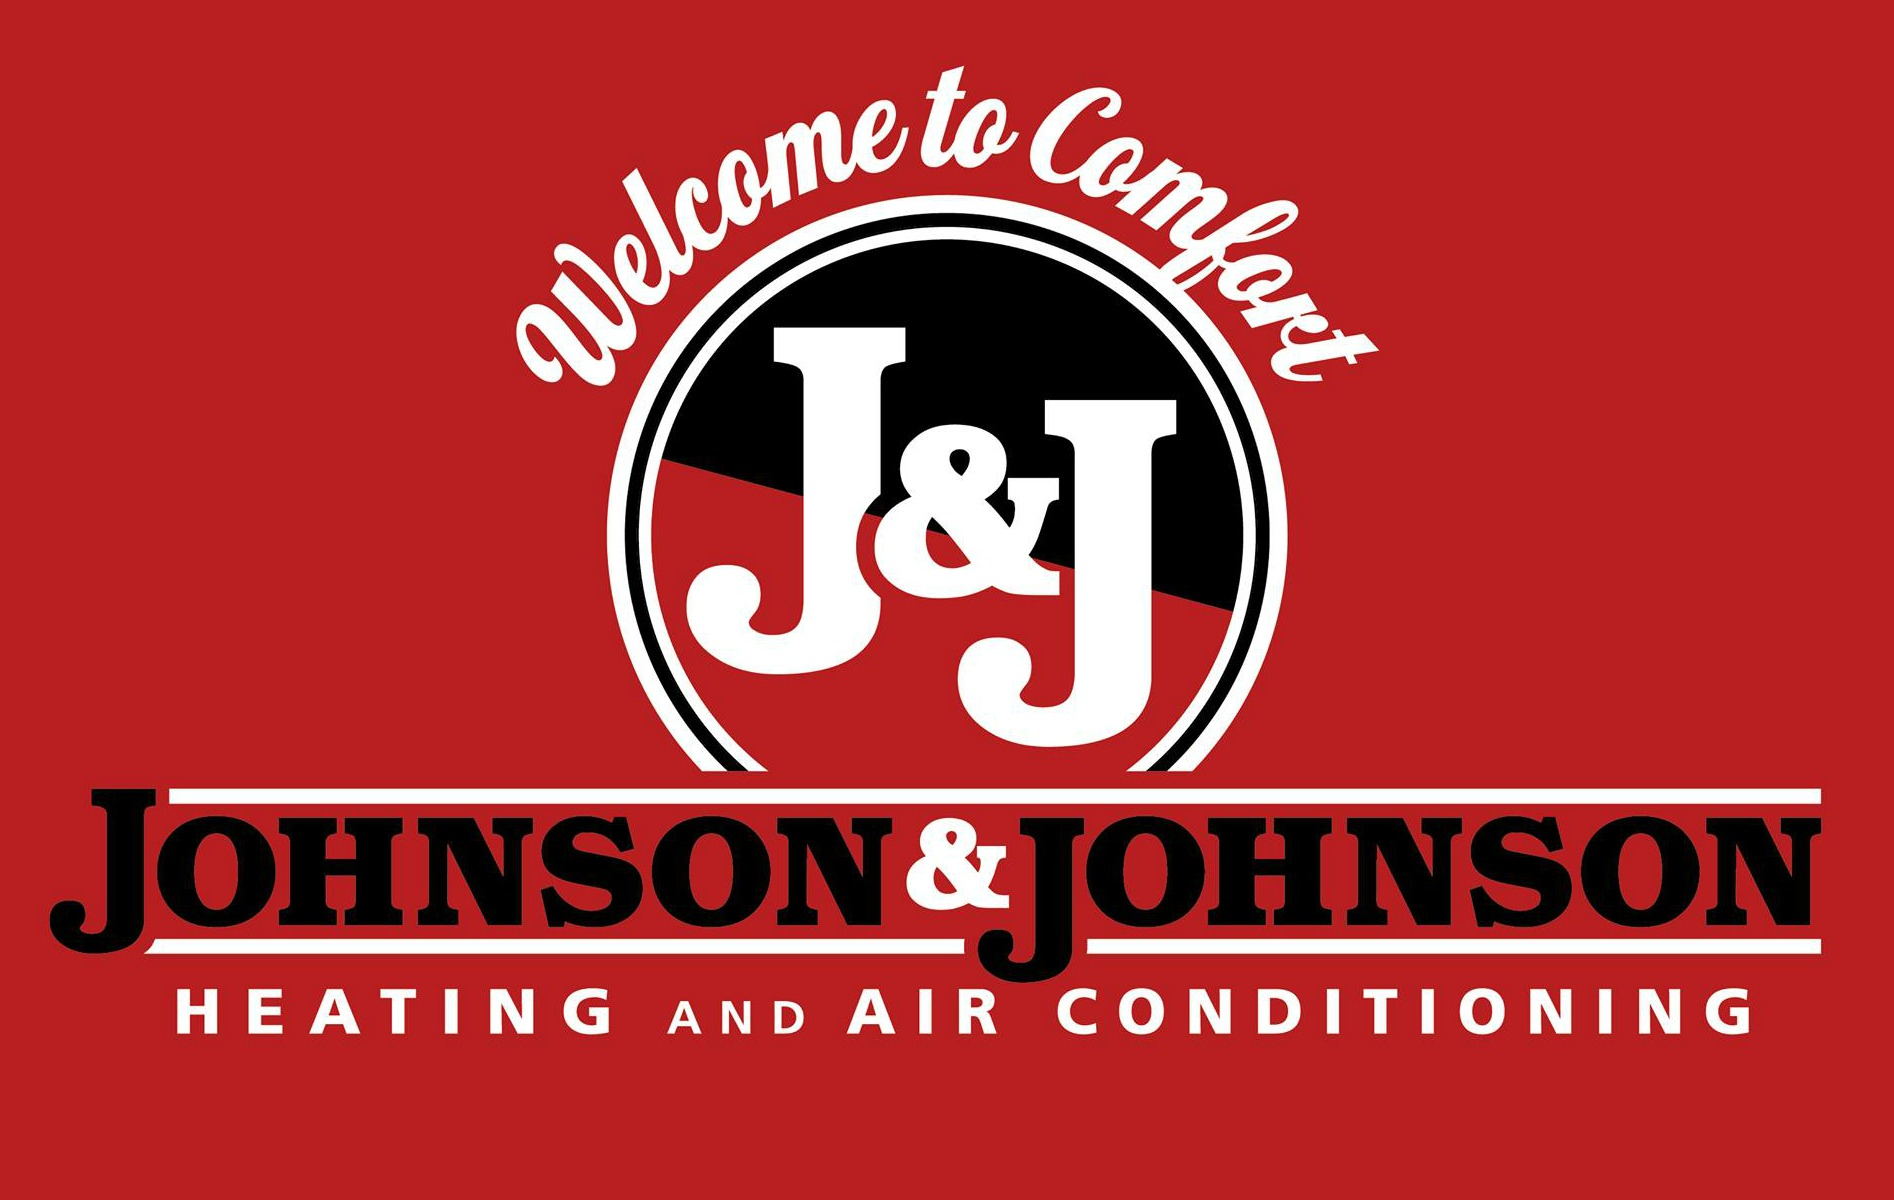 Johnson & Johnson Heating & Air Conditioning reviews | Contractors at 124 Reliance Rd - Martinsburg WV